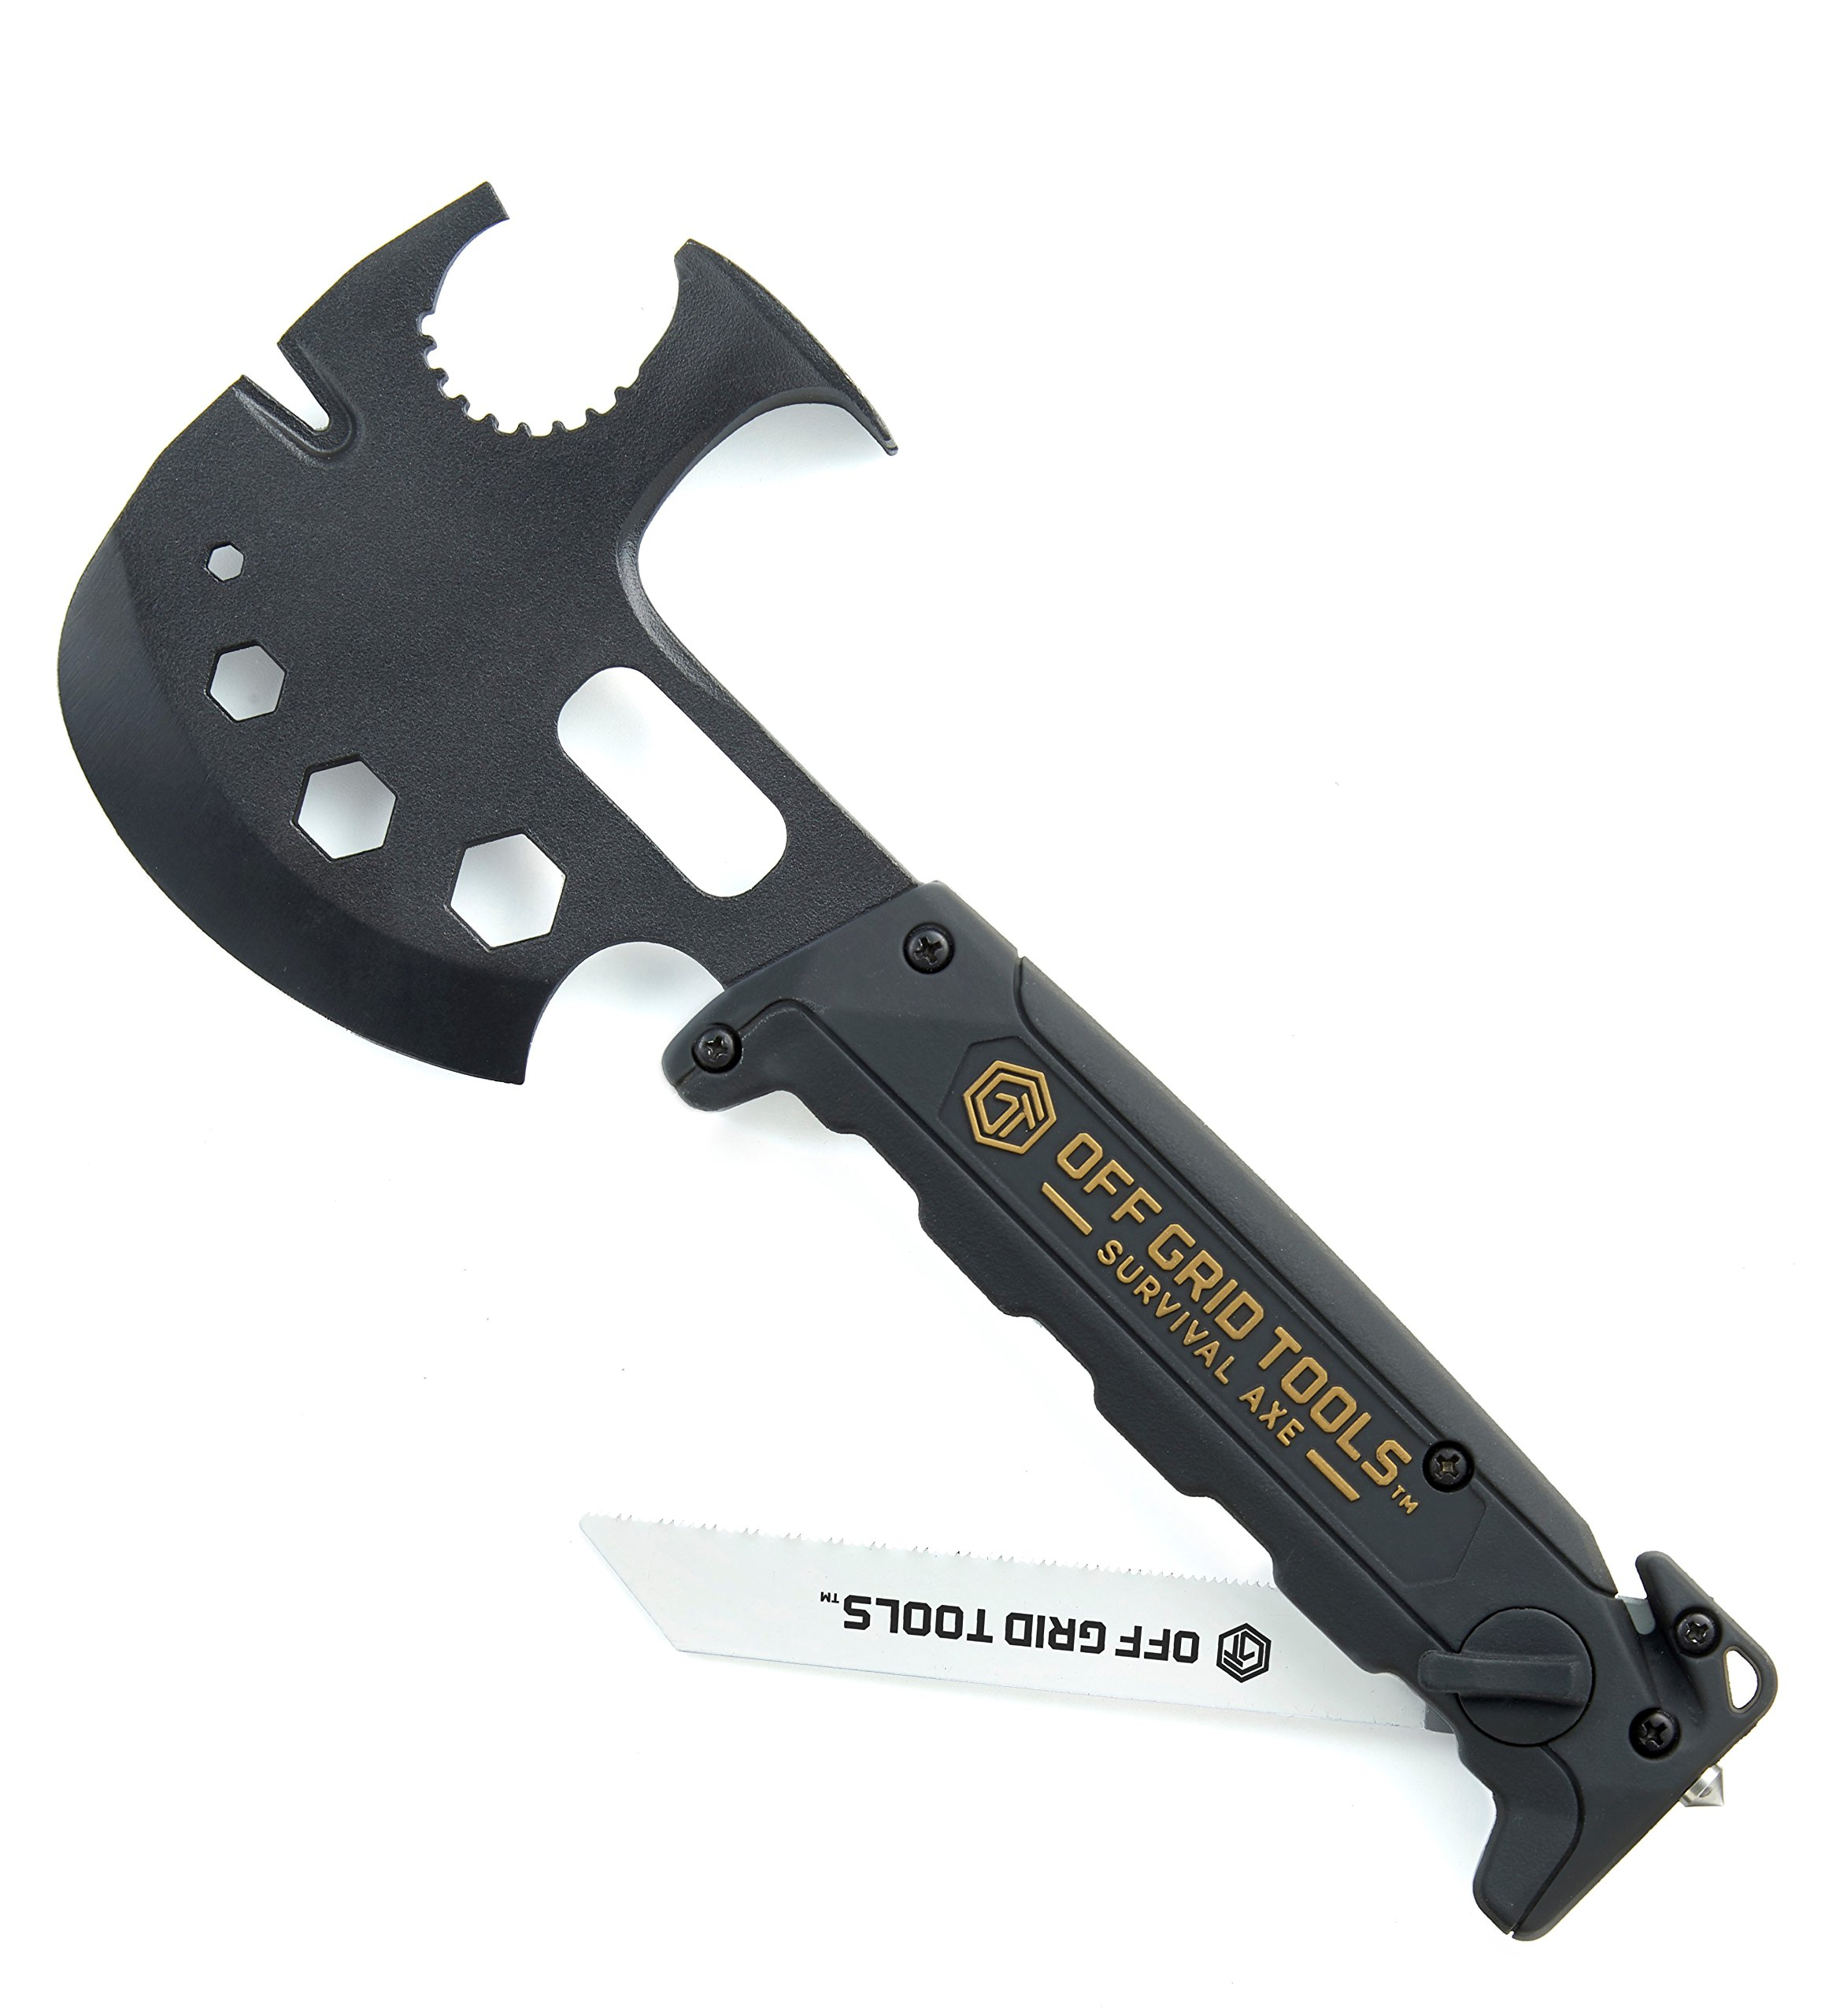 Off Grid Tools Survival Axe Ultimate Outdoor Multitool-Hatchet Hammer Saw, Black